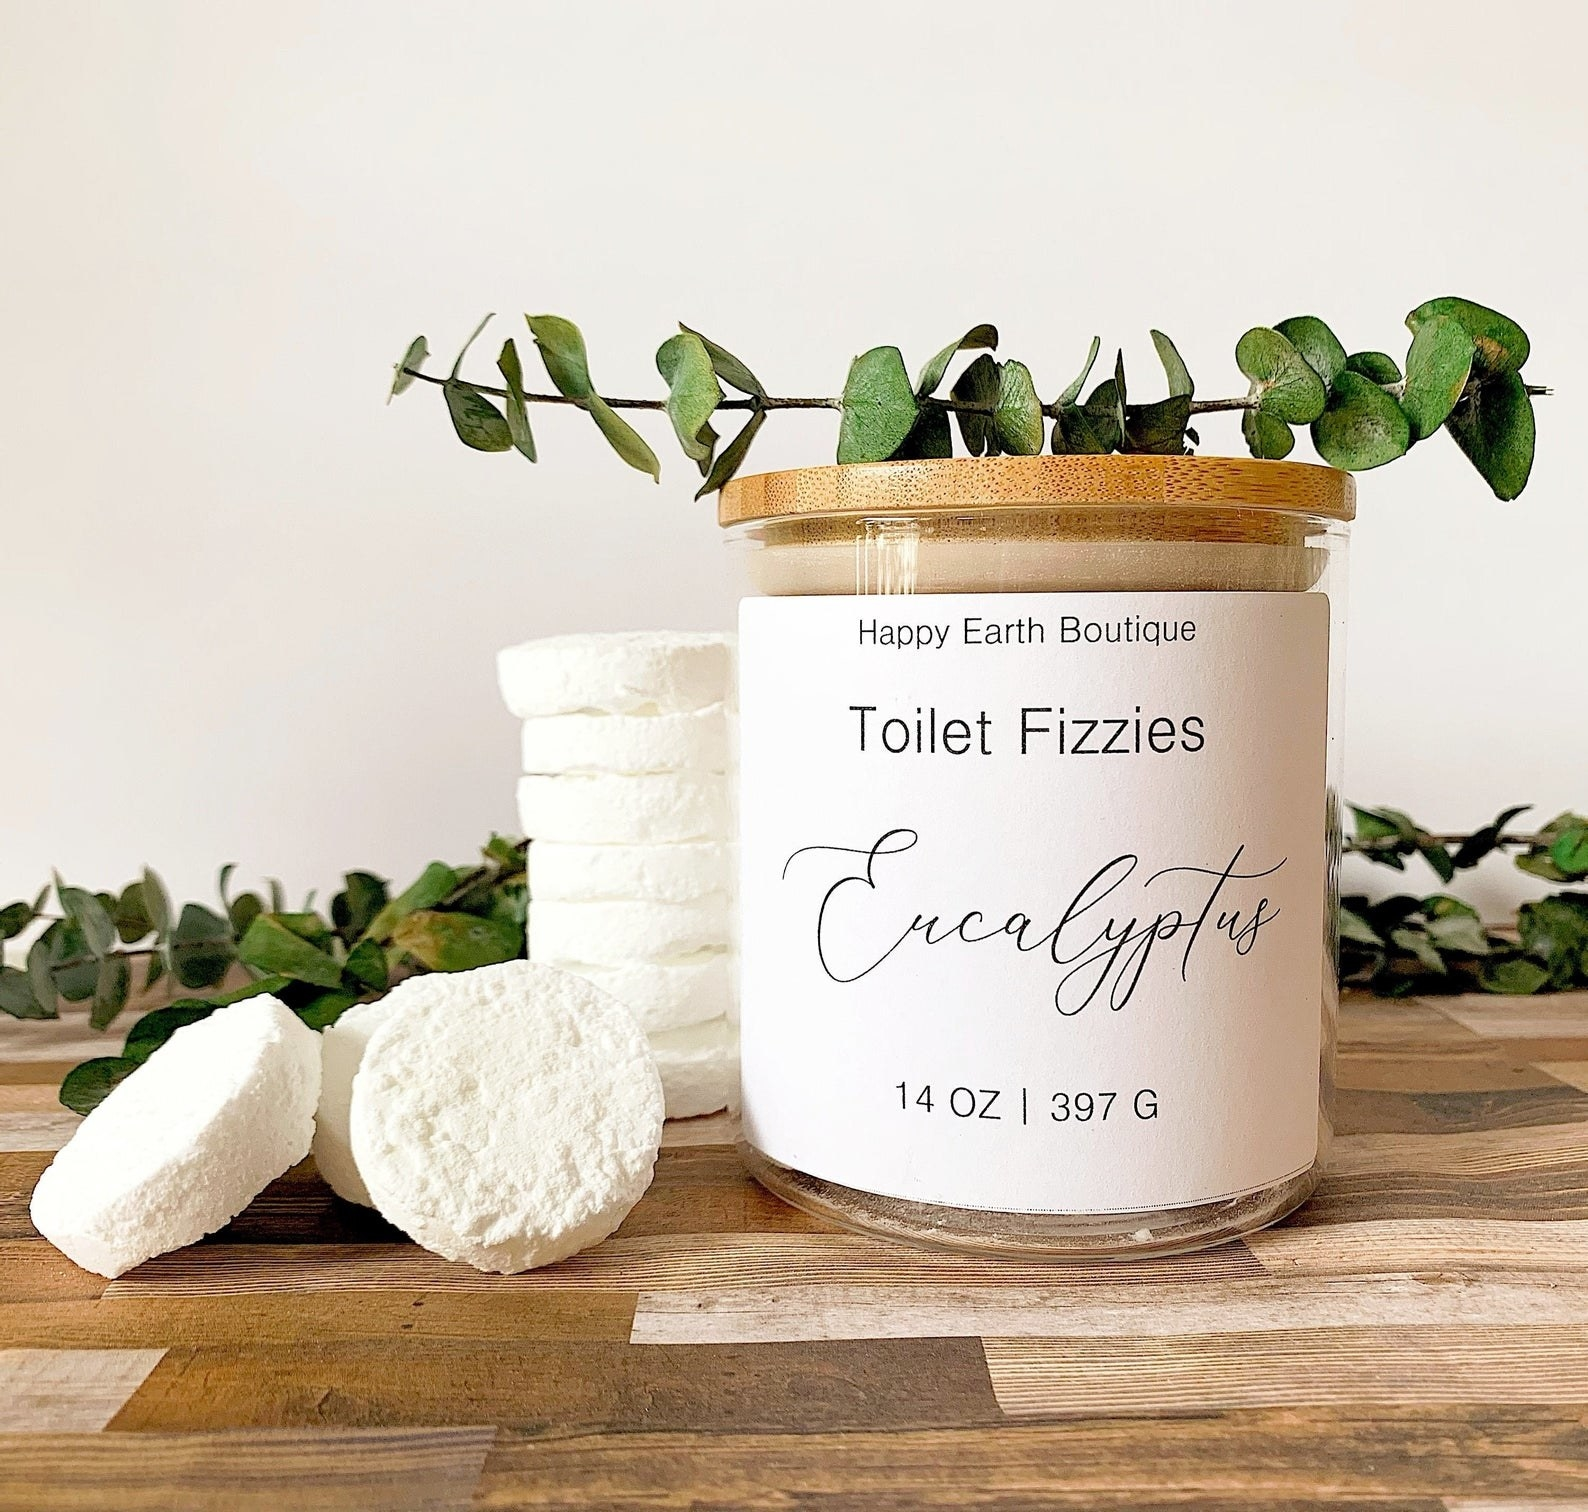 several eucalyptus toilet fizzies next to a jar full of more